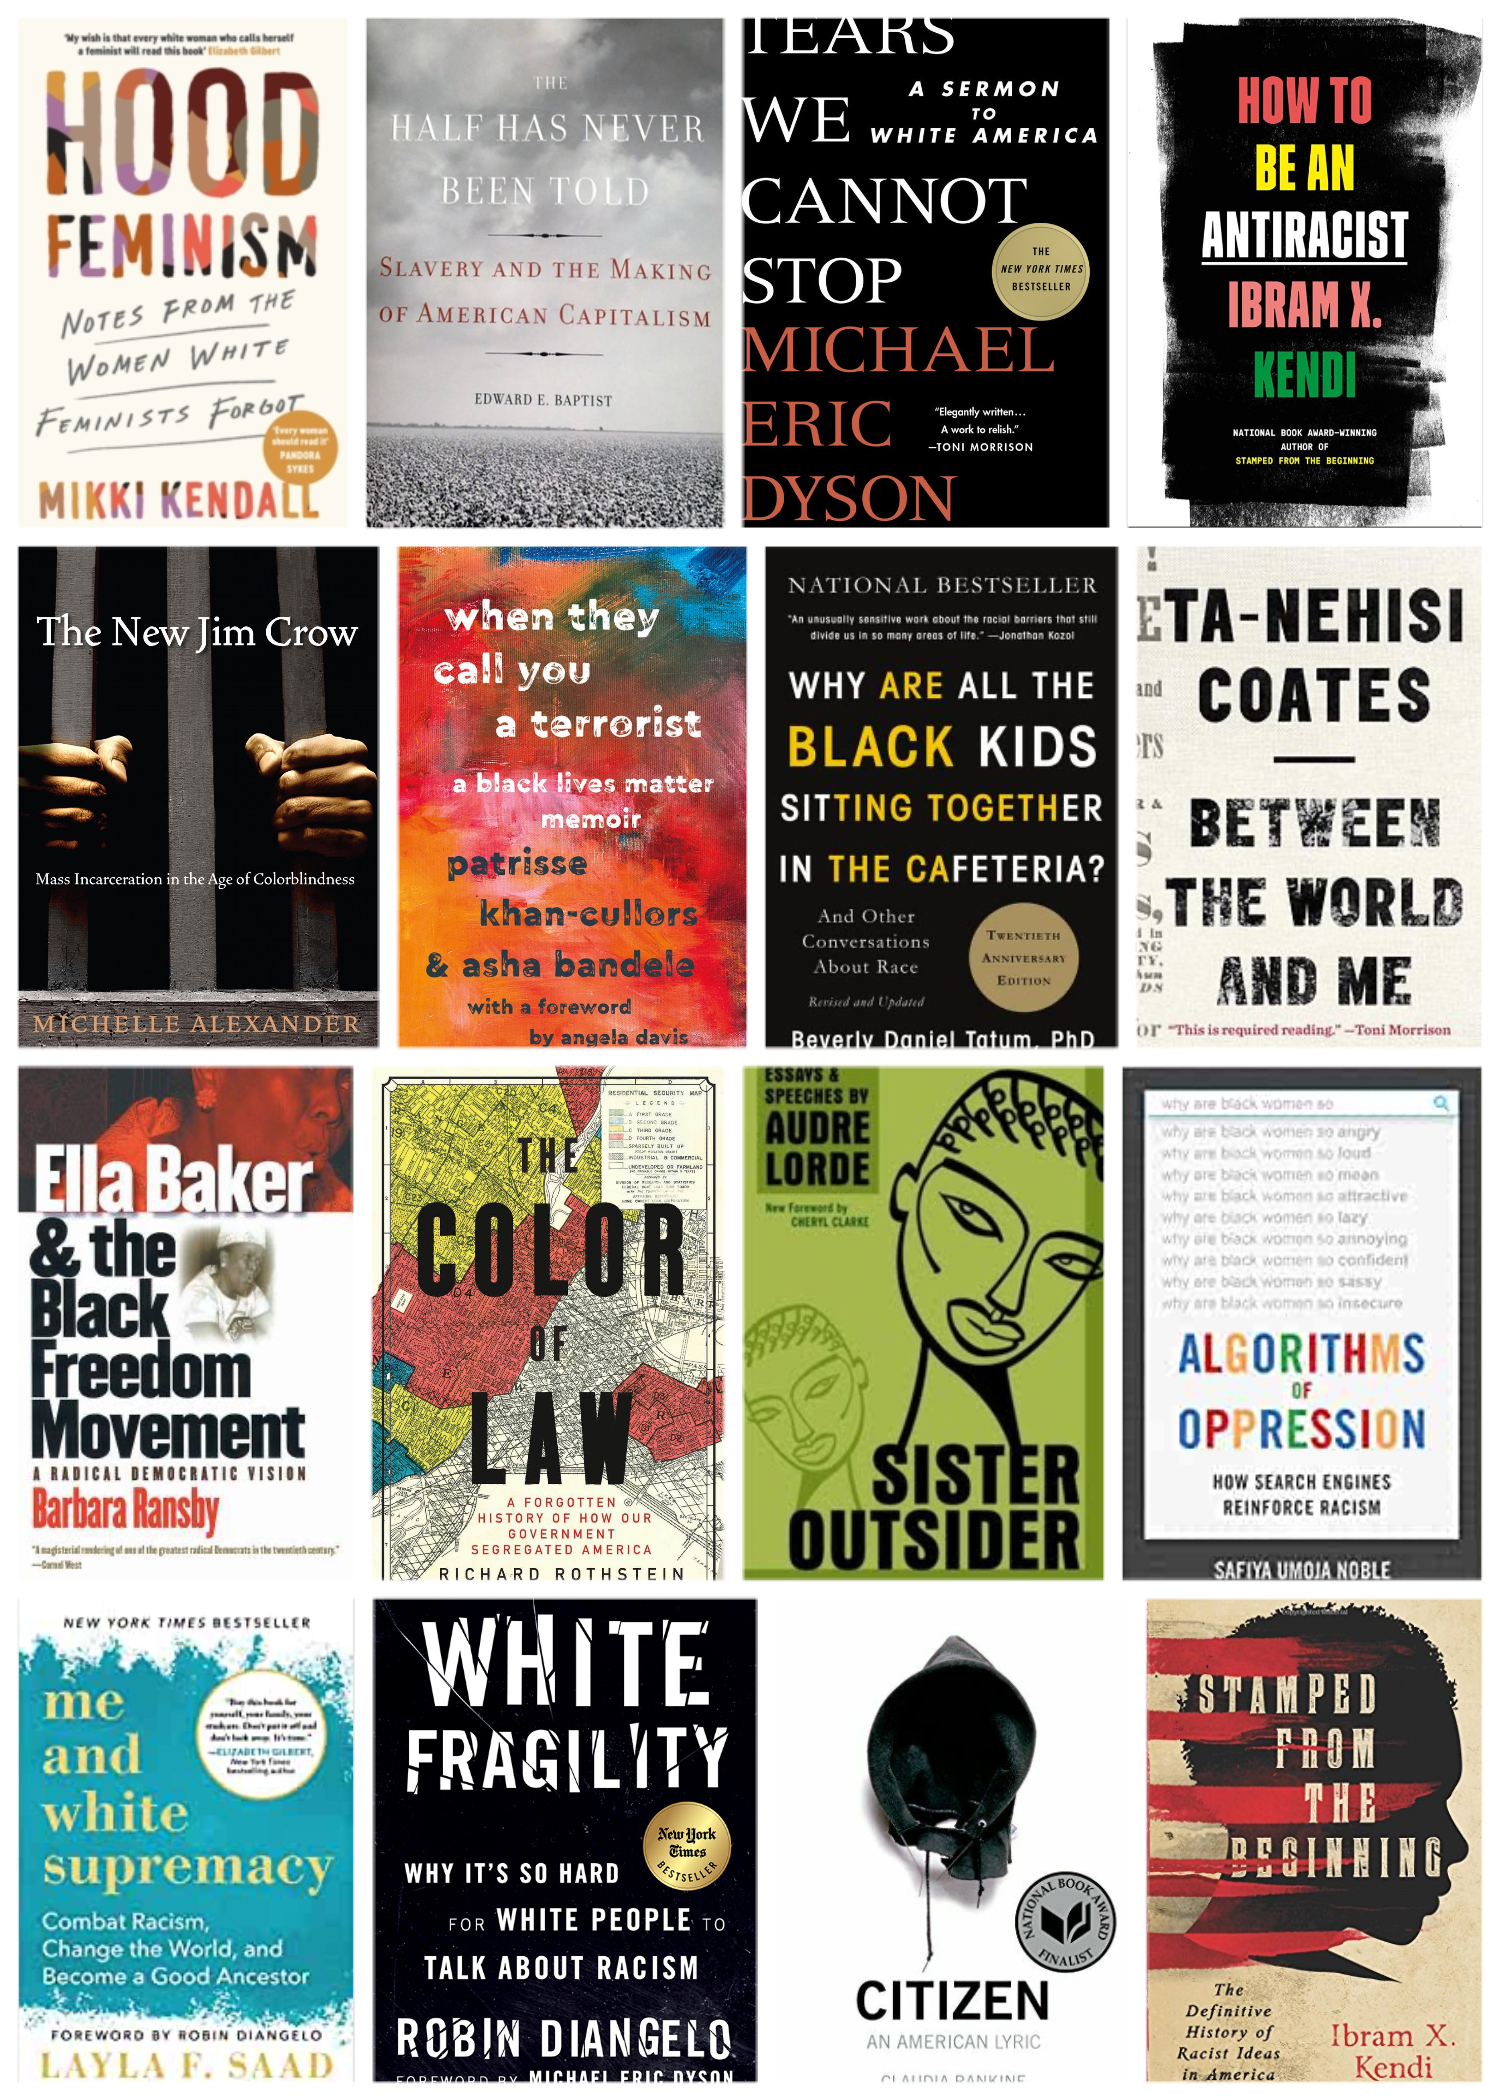 Collage of book covers featured in the article.